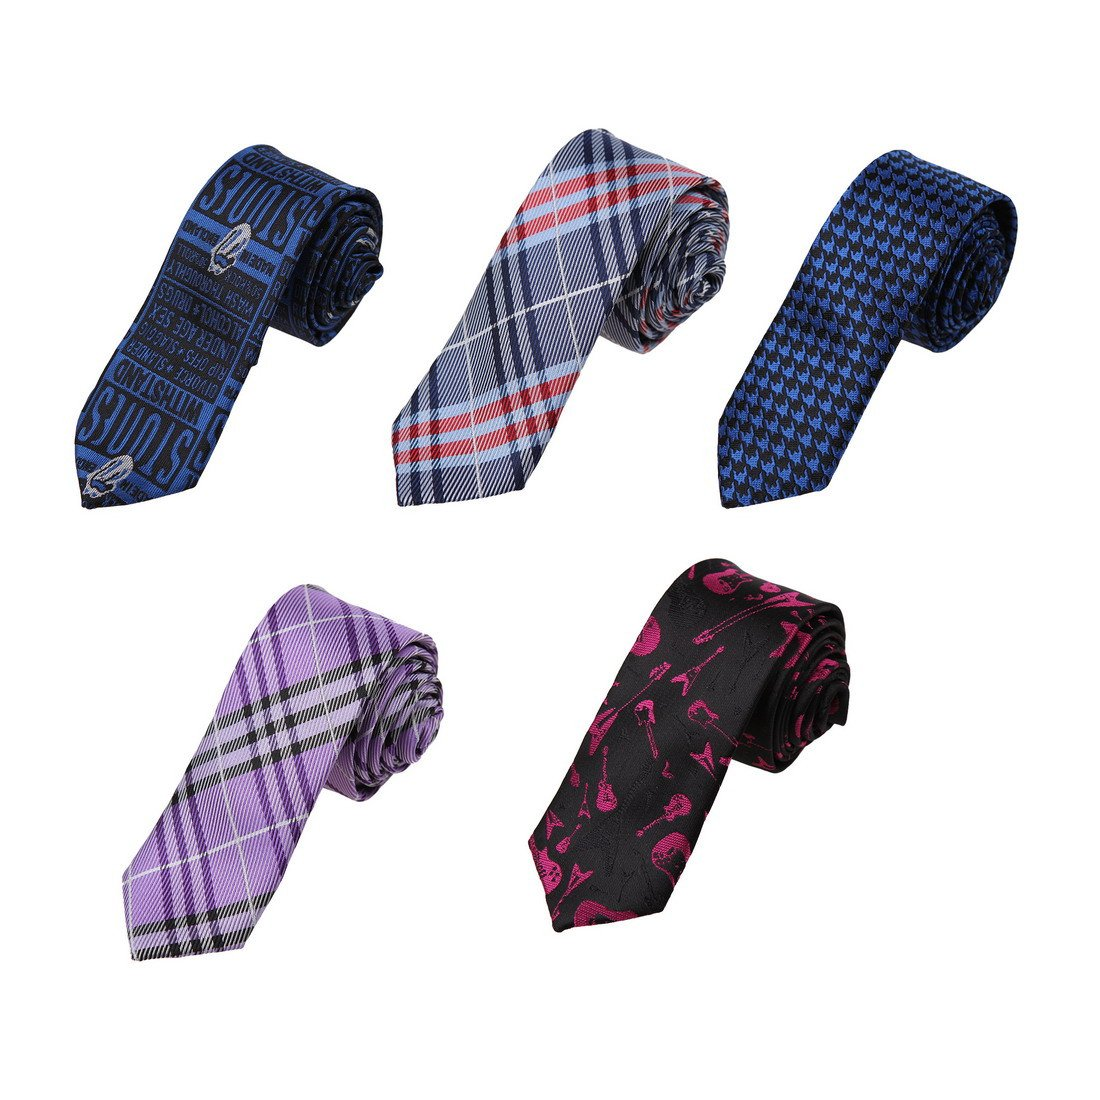 DANF0039 Series Colors 5cm-width Polyester Slim Ties Creative Fashion Skinny Ties - 5 Styles Available Inspire For Business By Dan Smith by Dan Smith (Image #1)